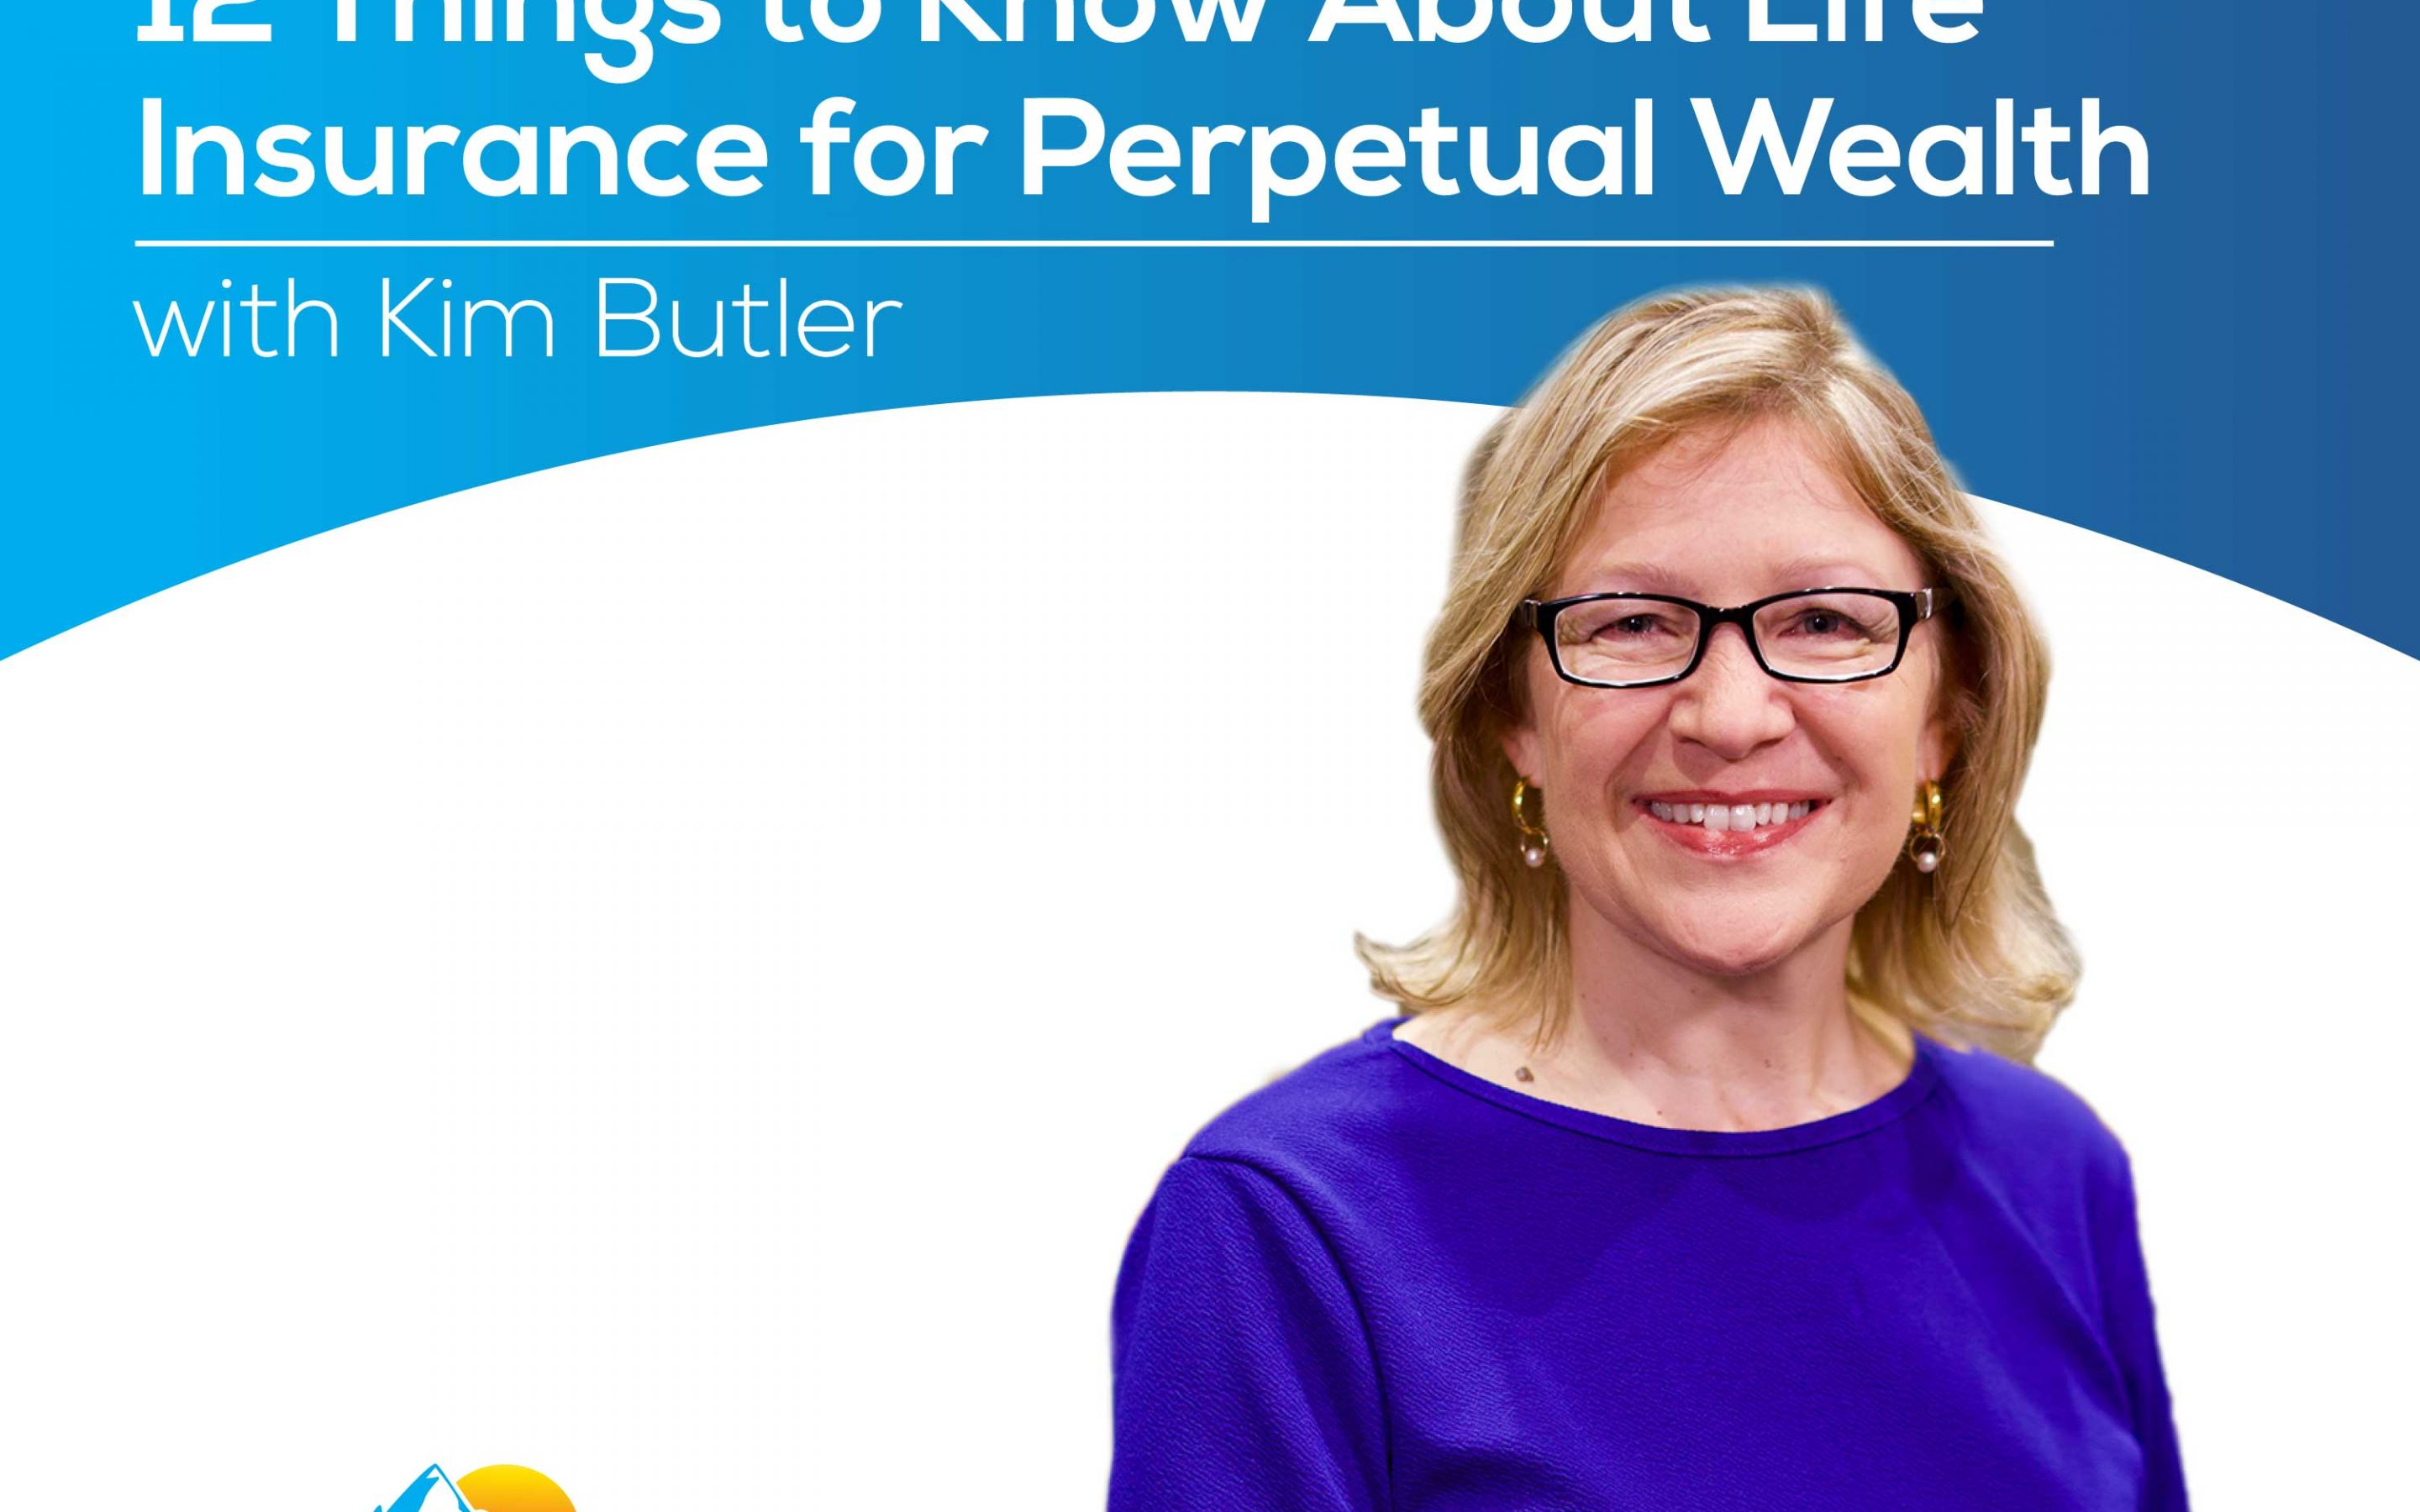 12 Things to Know About Life Insurance for Perpetual Wealth with Kim Butler – Episode 180